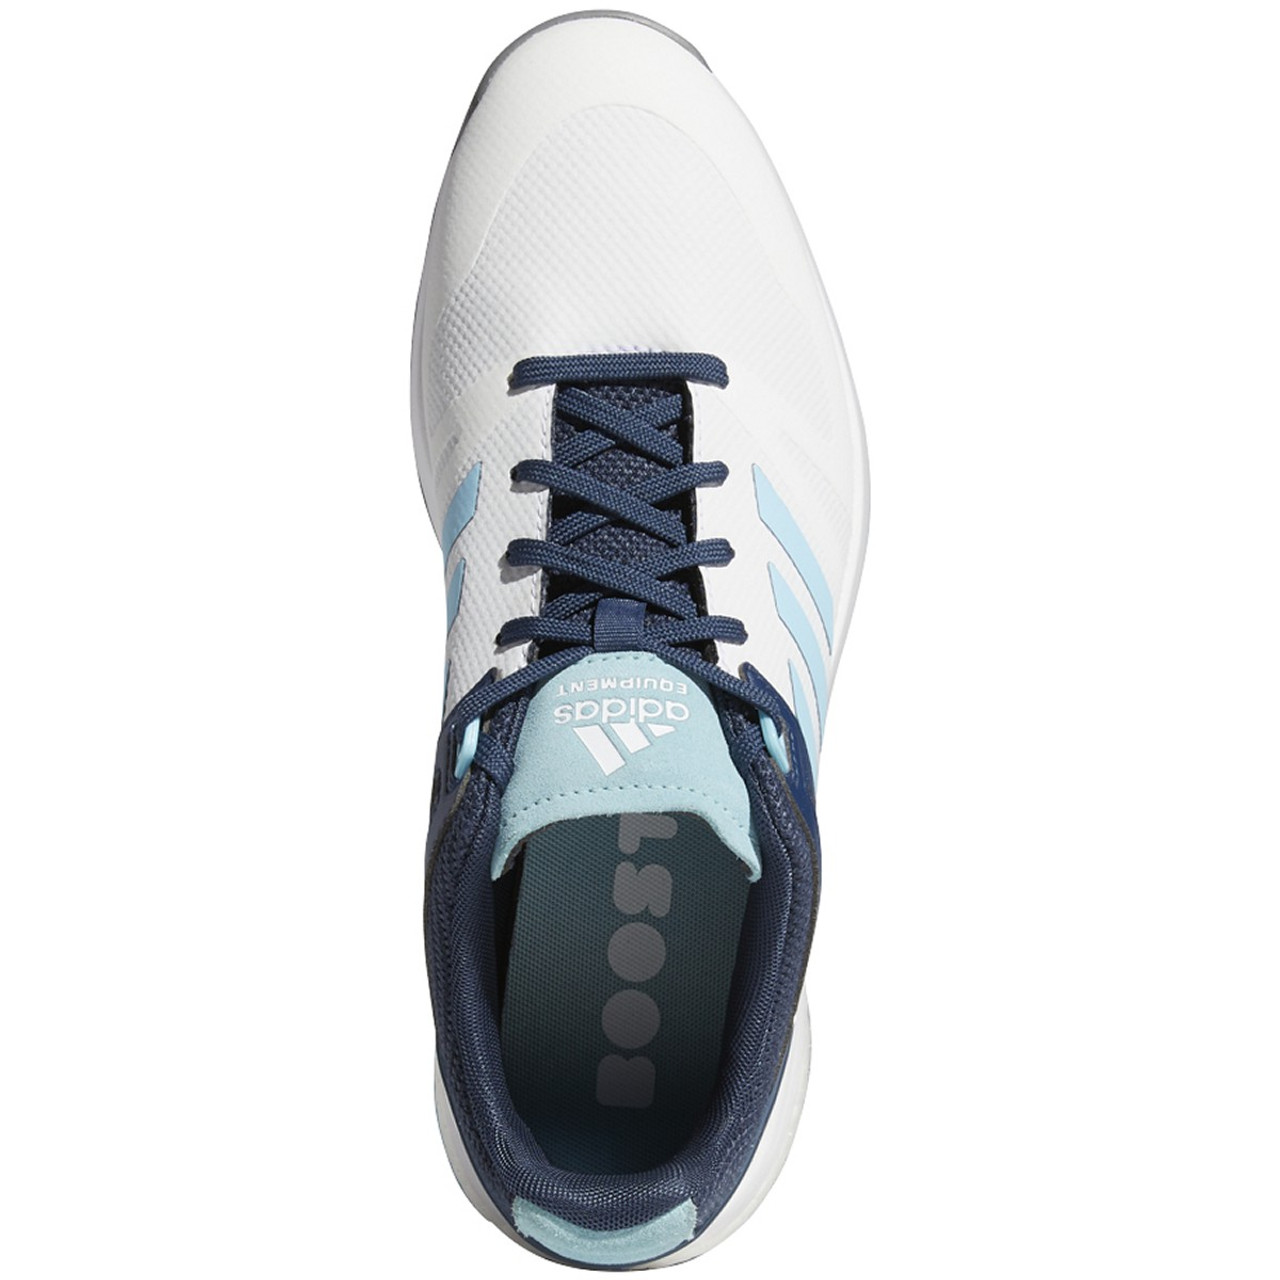 Adidas Womens EQT Spikeless Golf Shoes - White / Hazy Sky / Crew Navy